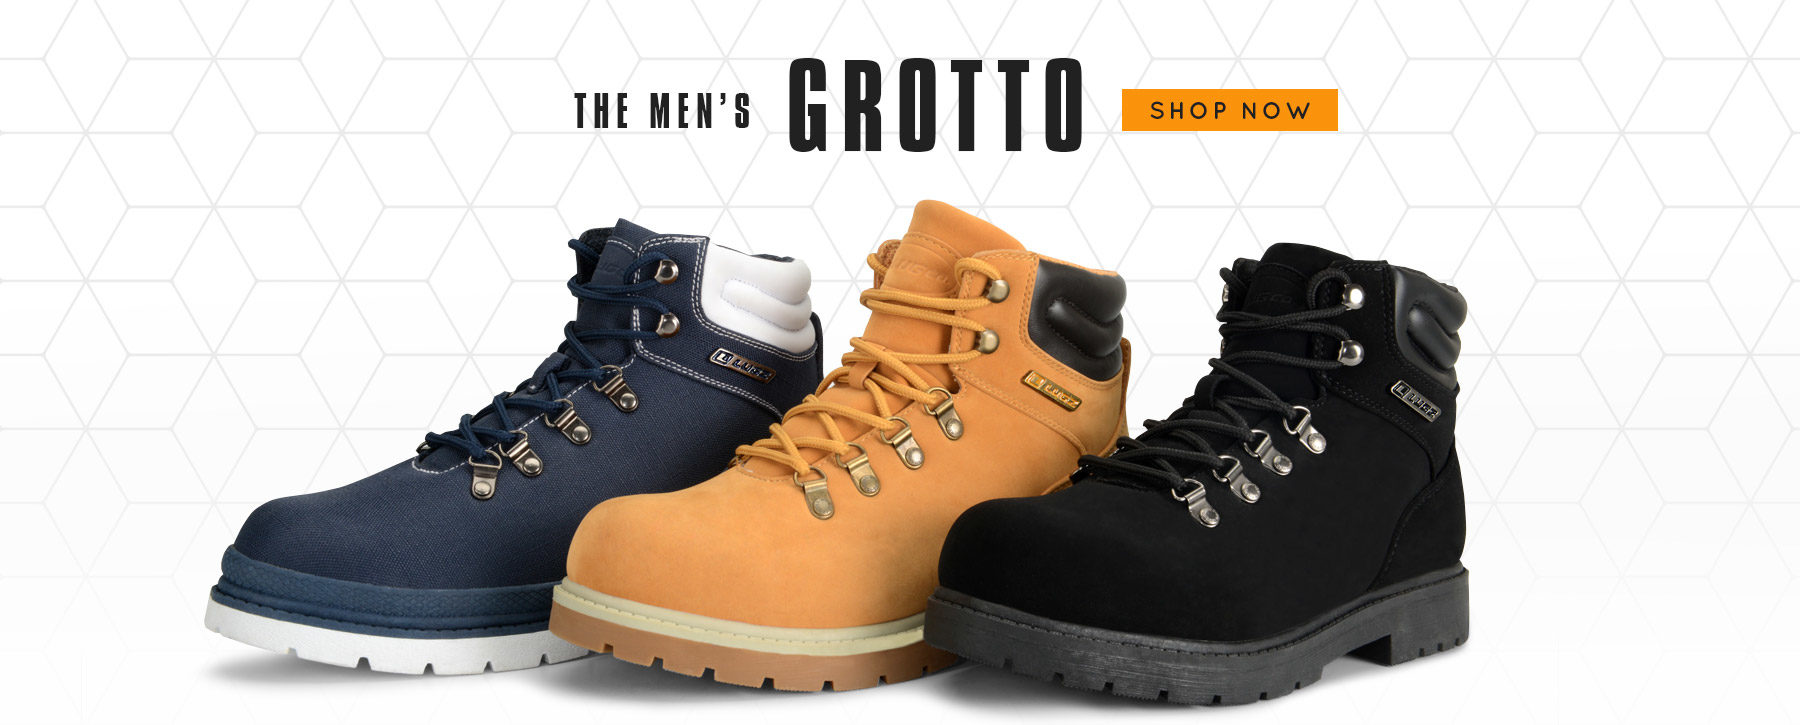 Home Lugz Footwear Sepatu All Bike Get 40 Off With Code Holiday40 Spend 50 For Free Us Shipping Easy Returns